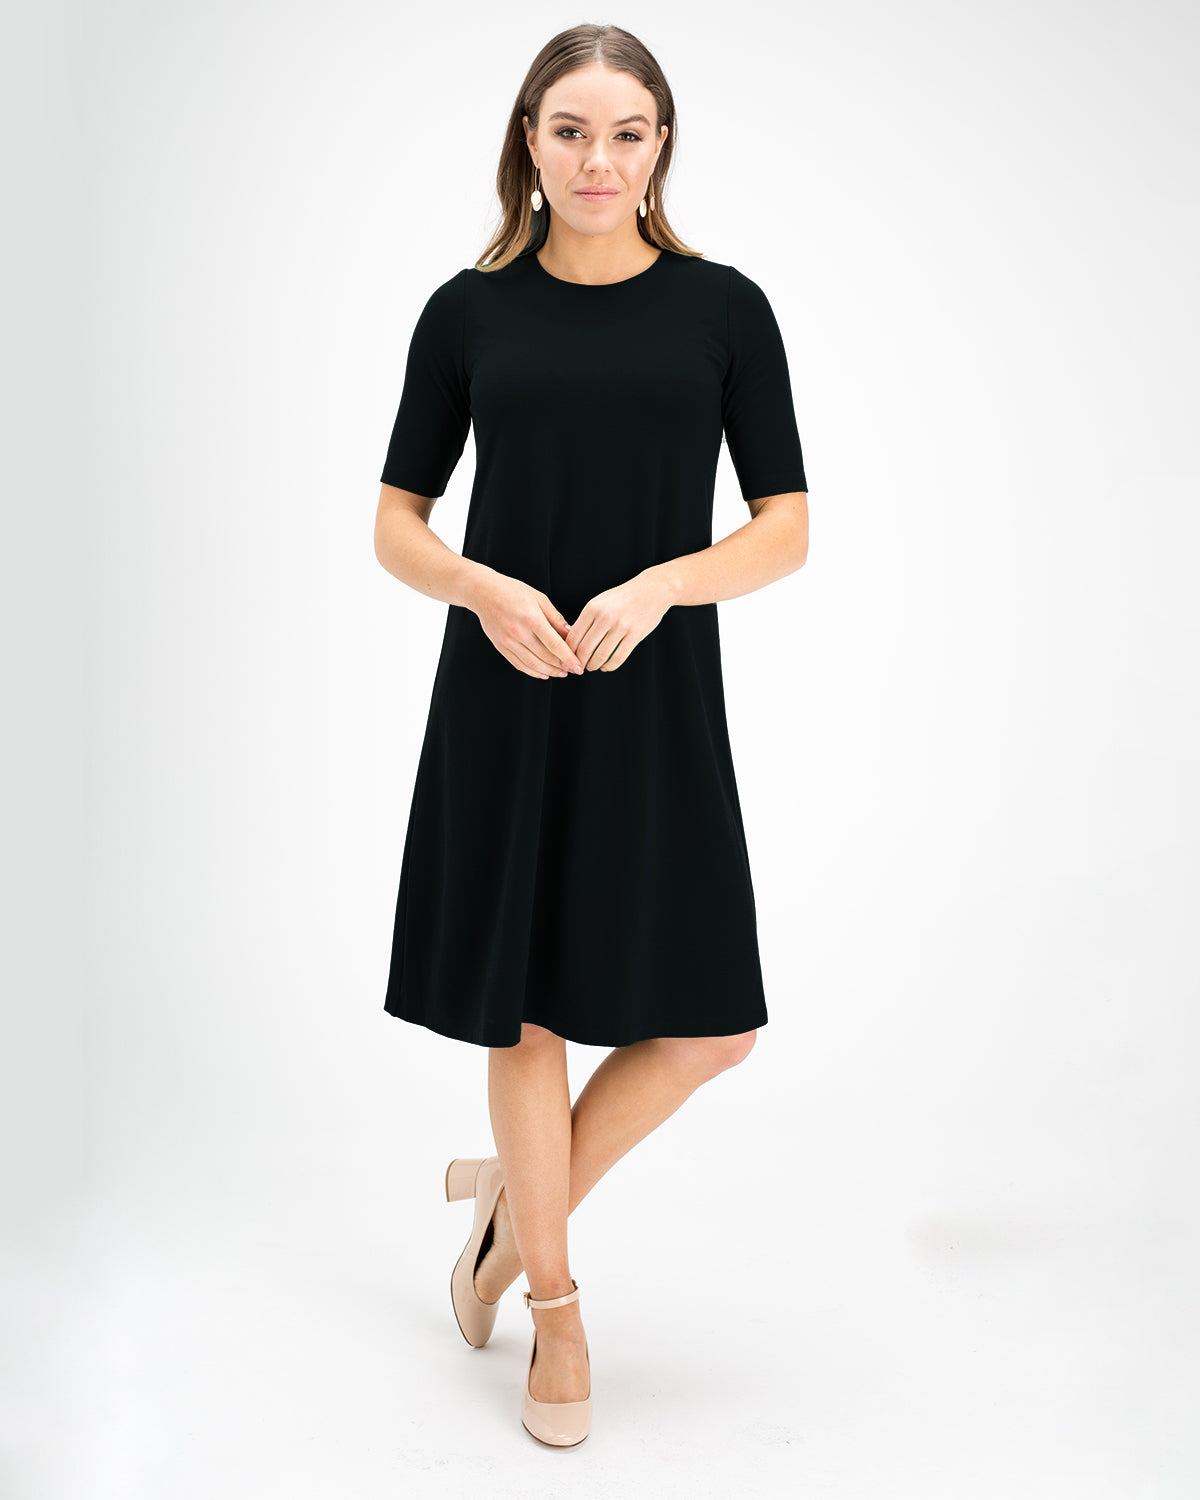 Libby Swing Dress